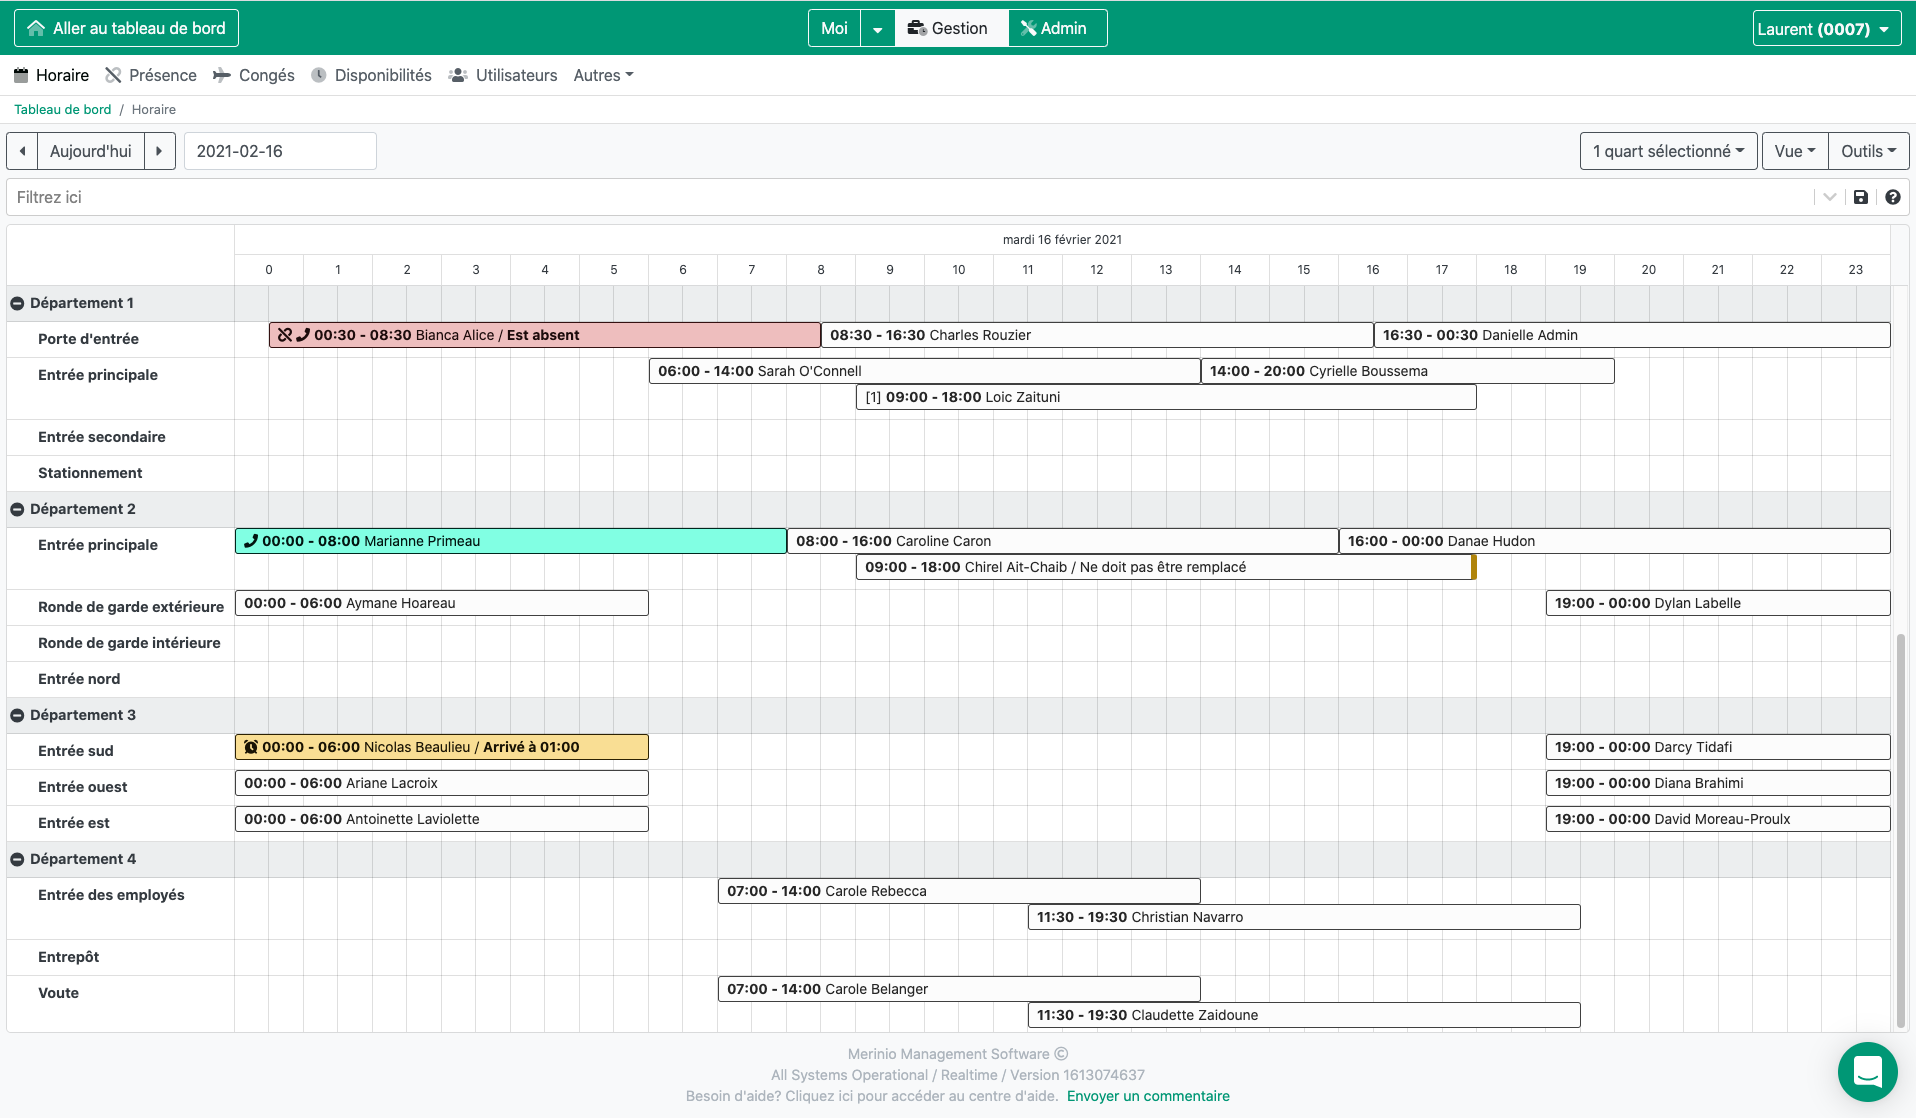 Merinio Software - Simplify your schedule creation: Facilitate the delicate task of schedule management with software that will take into account all of your company's specific constraints and offer you a maximum of automation options.